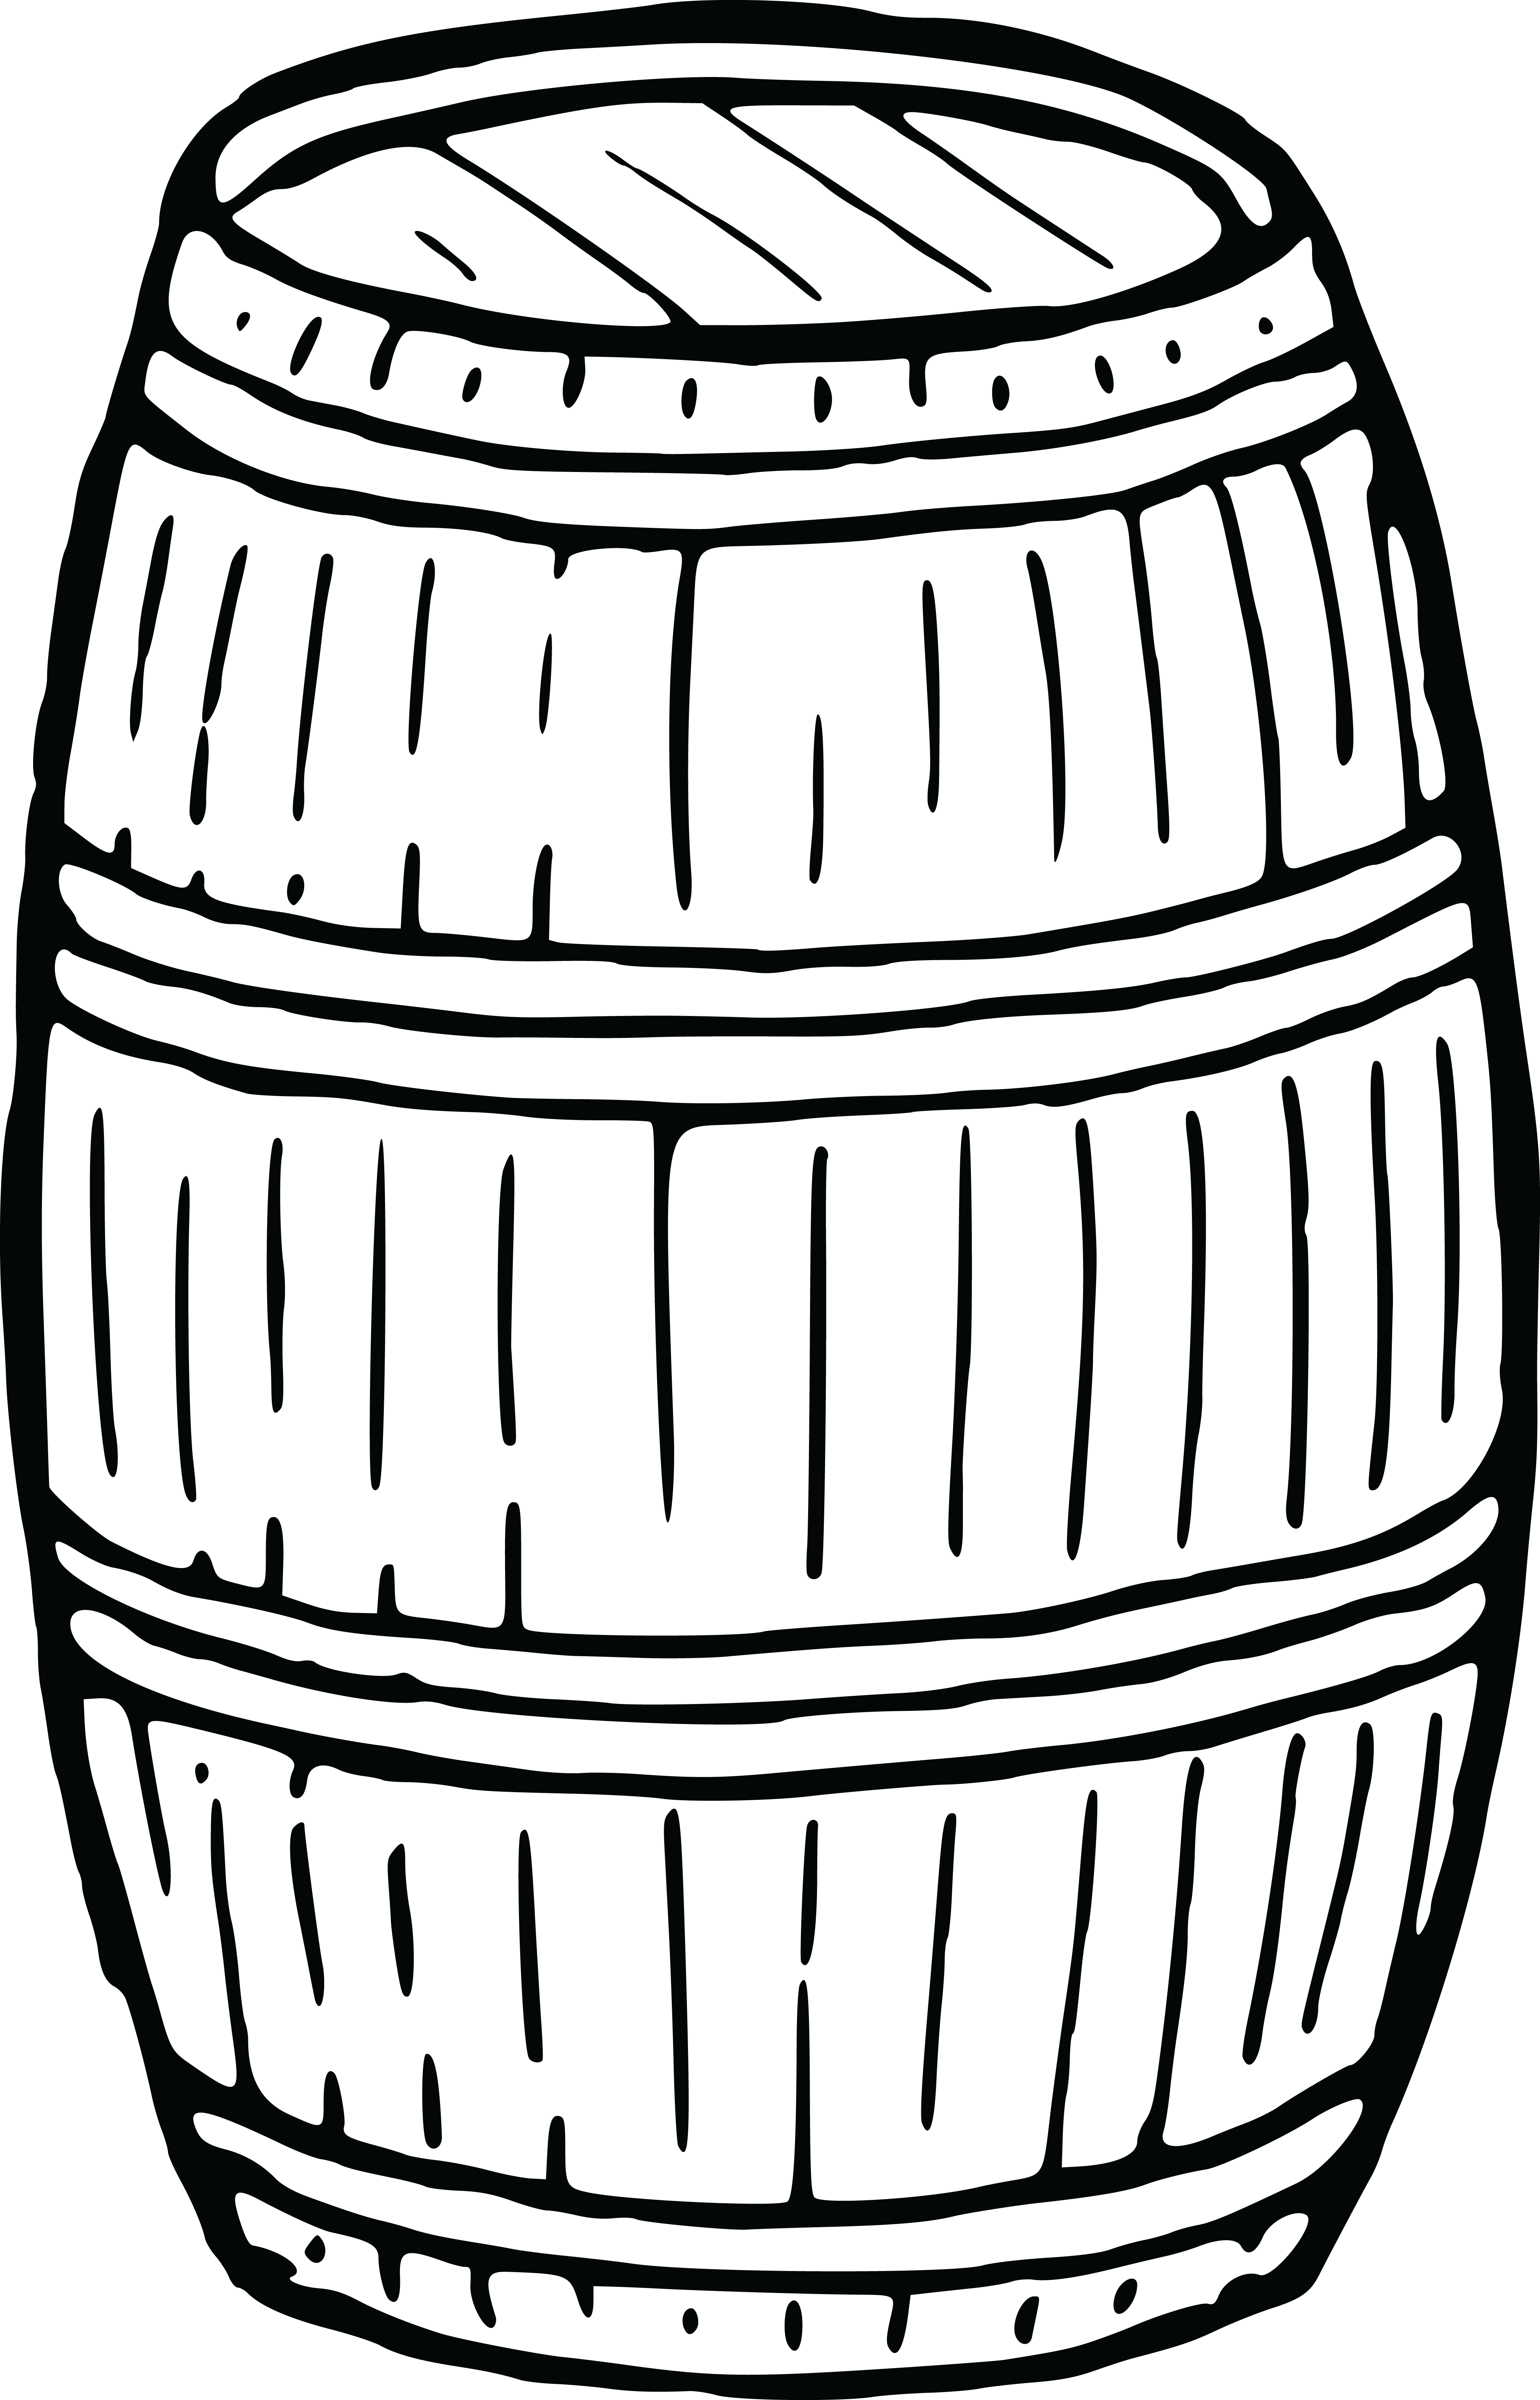 Barrel of apples clipart png. Collection free barrelled download